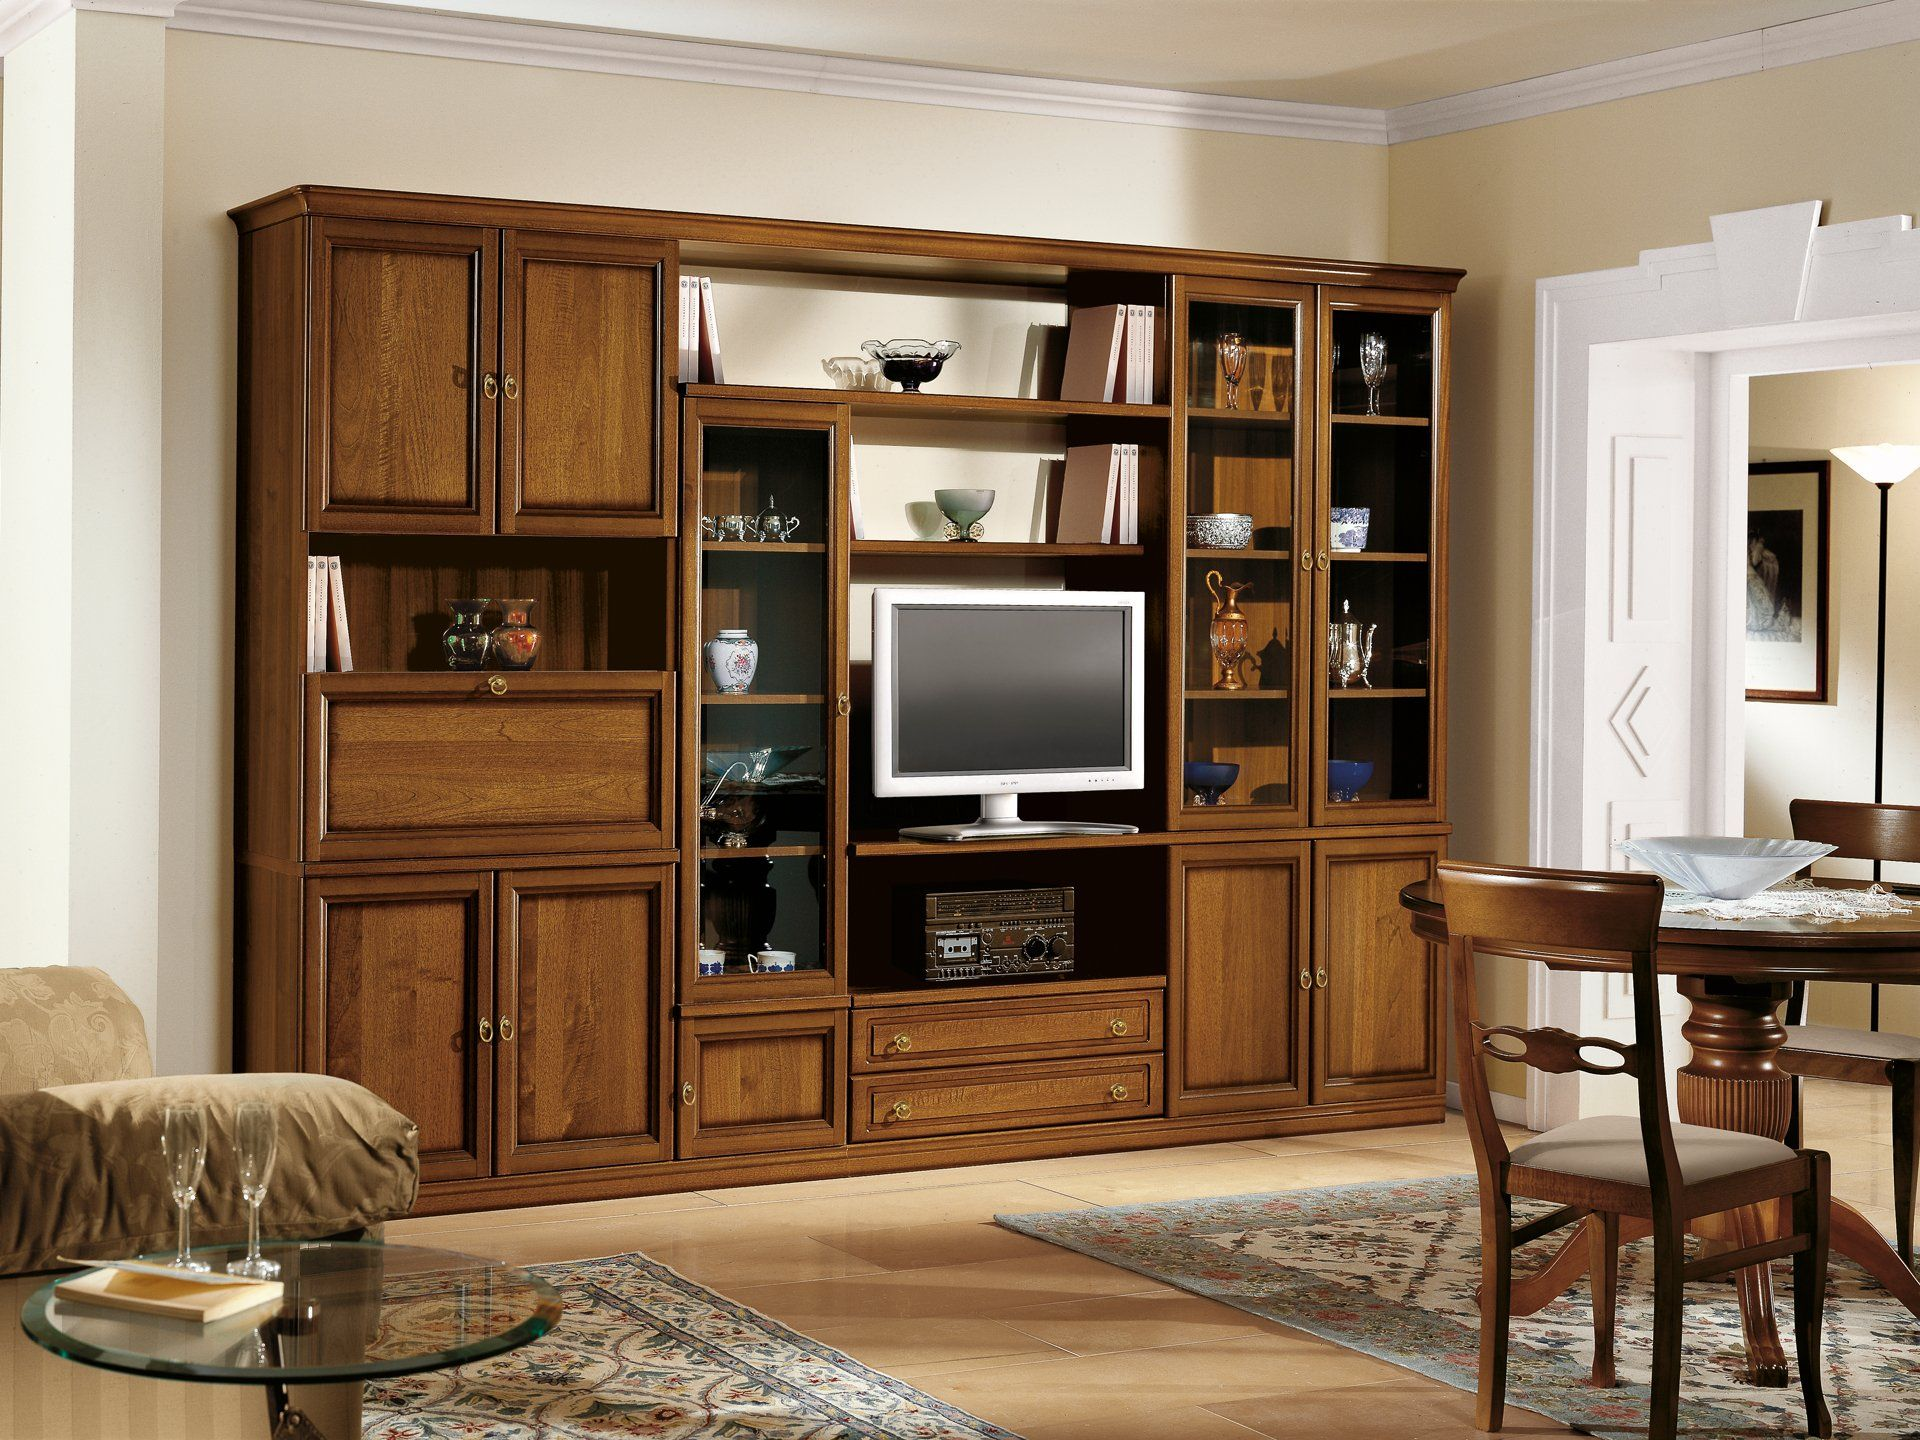 Epoca dining room wall unit by Tomasella